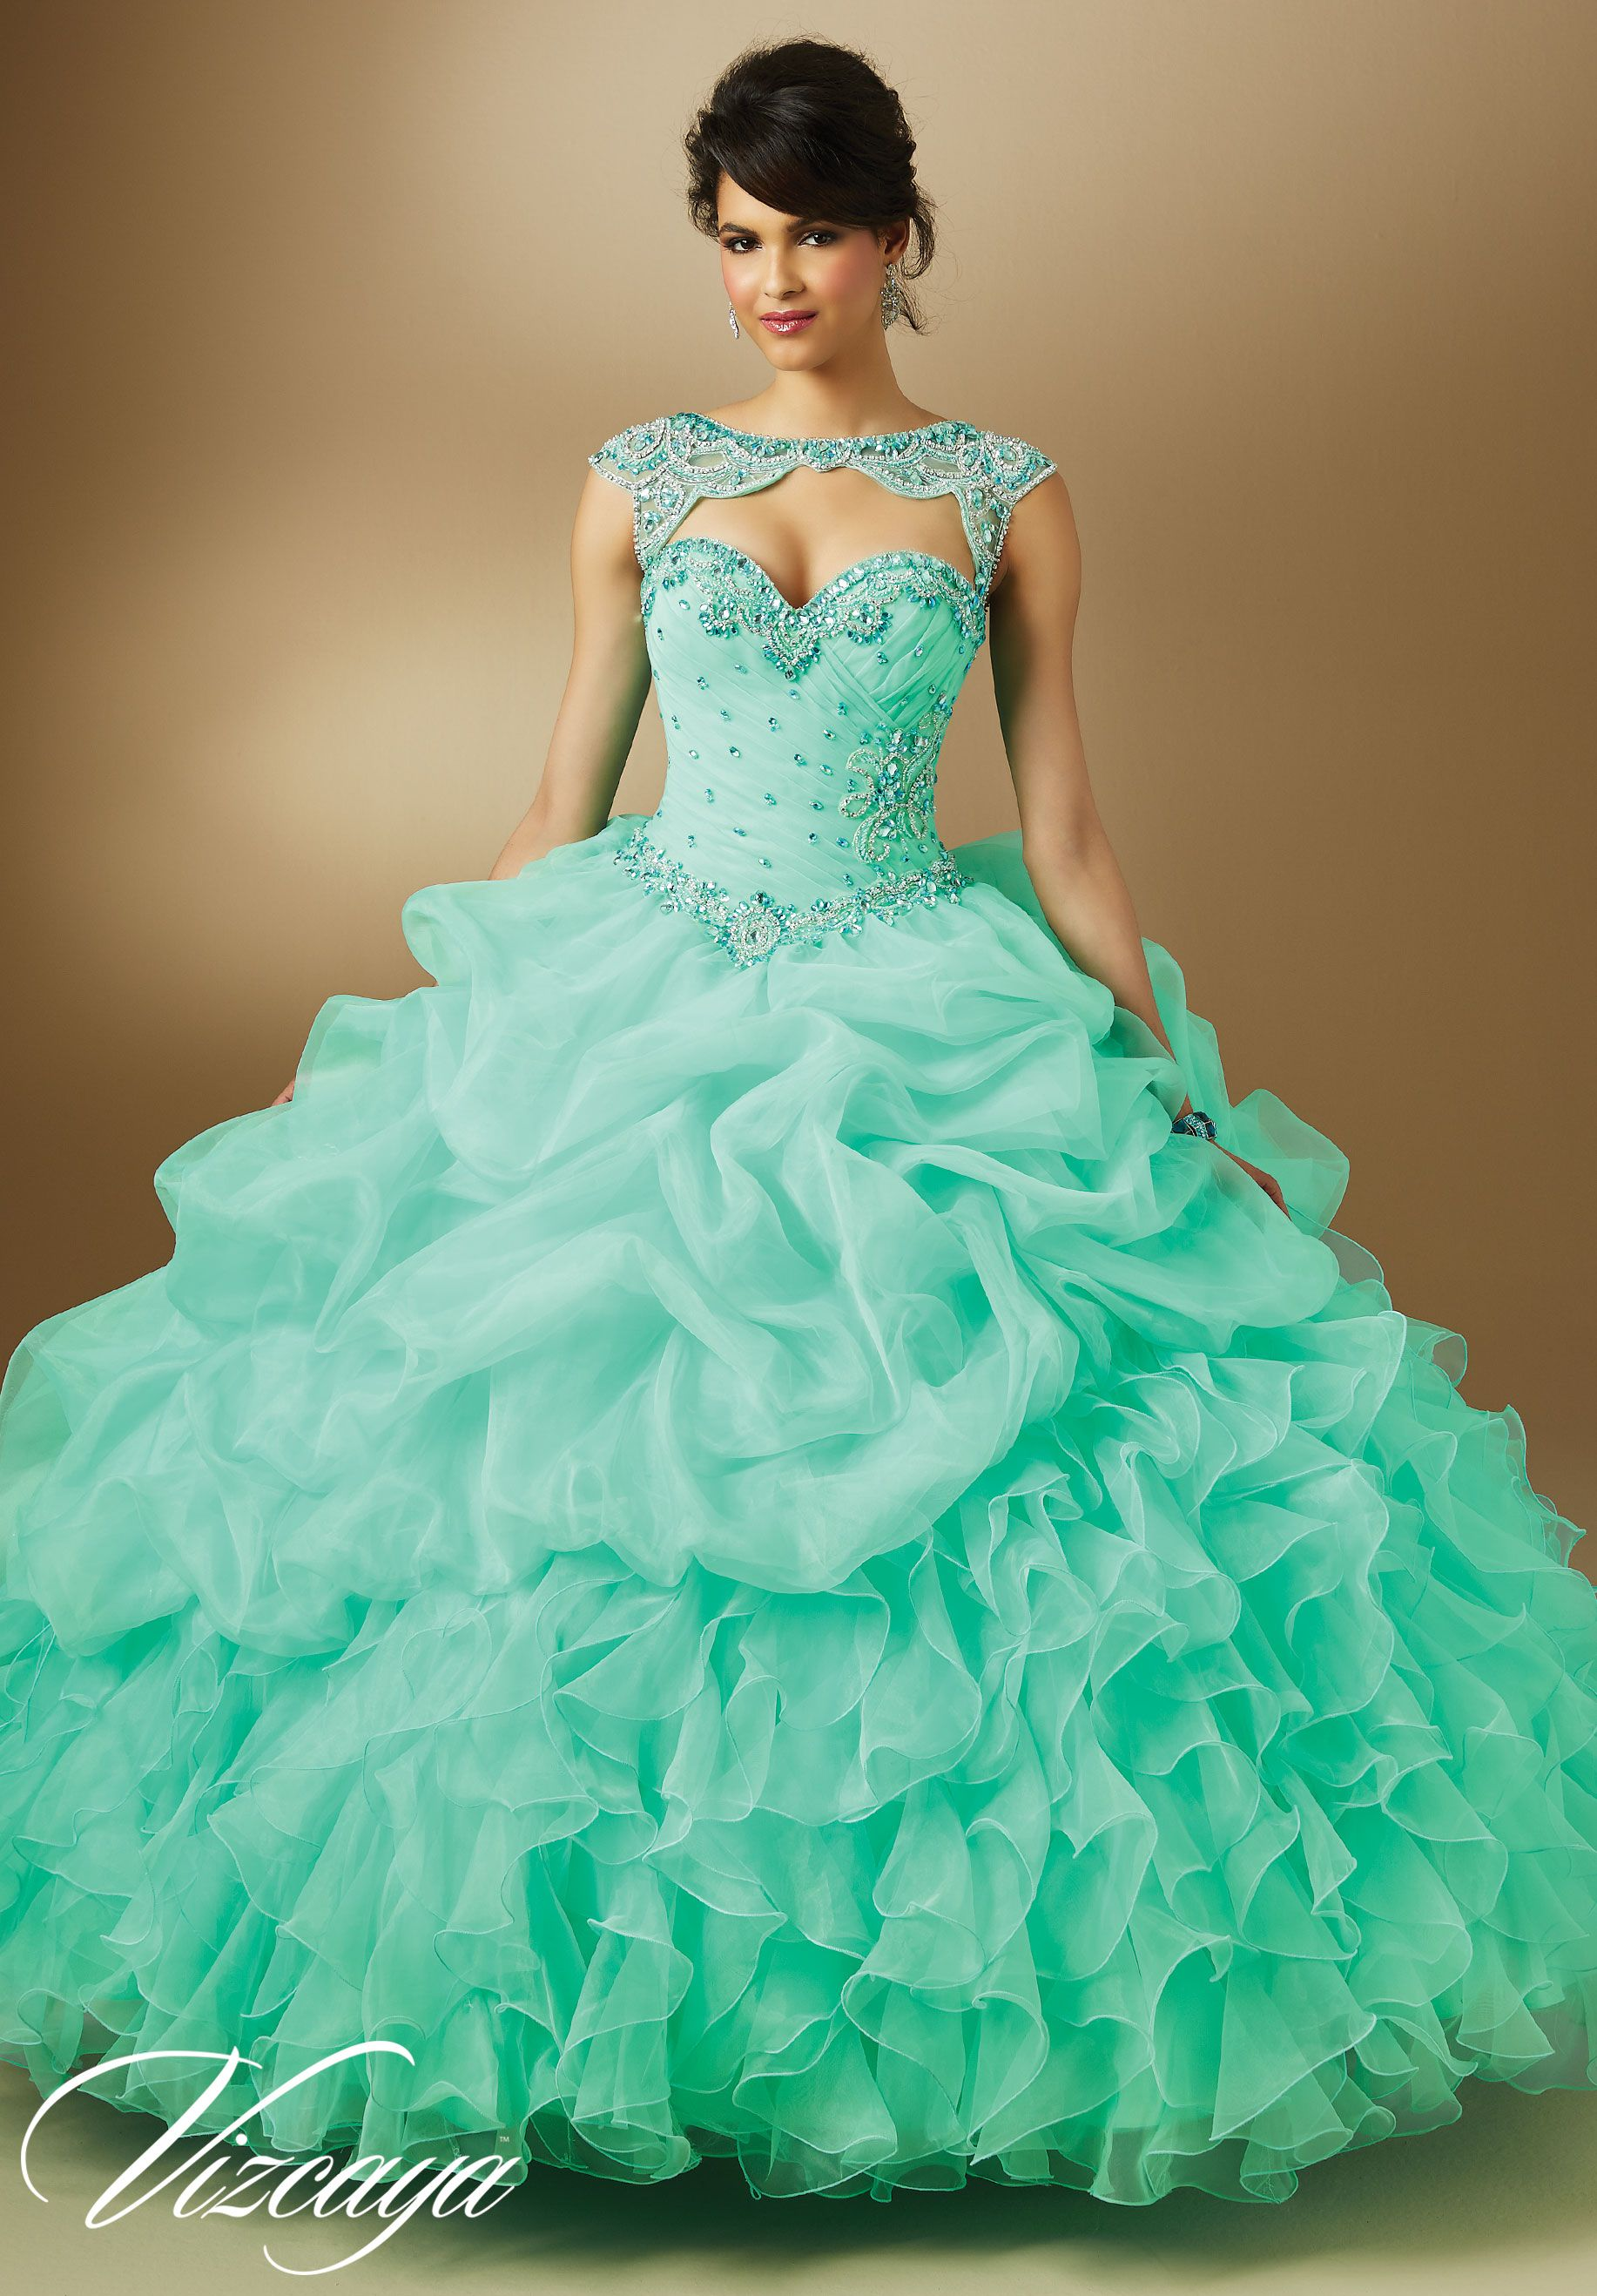 17 Best images about Quince Dresses on Pinterest | 15 dresses ...